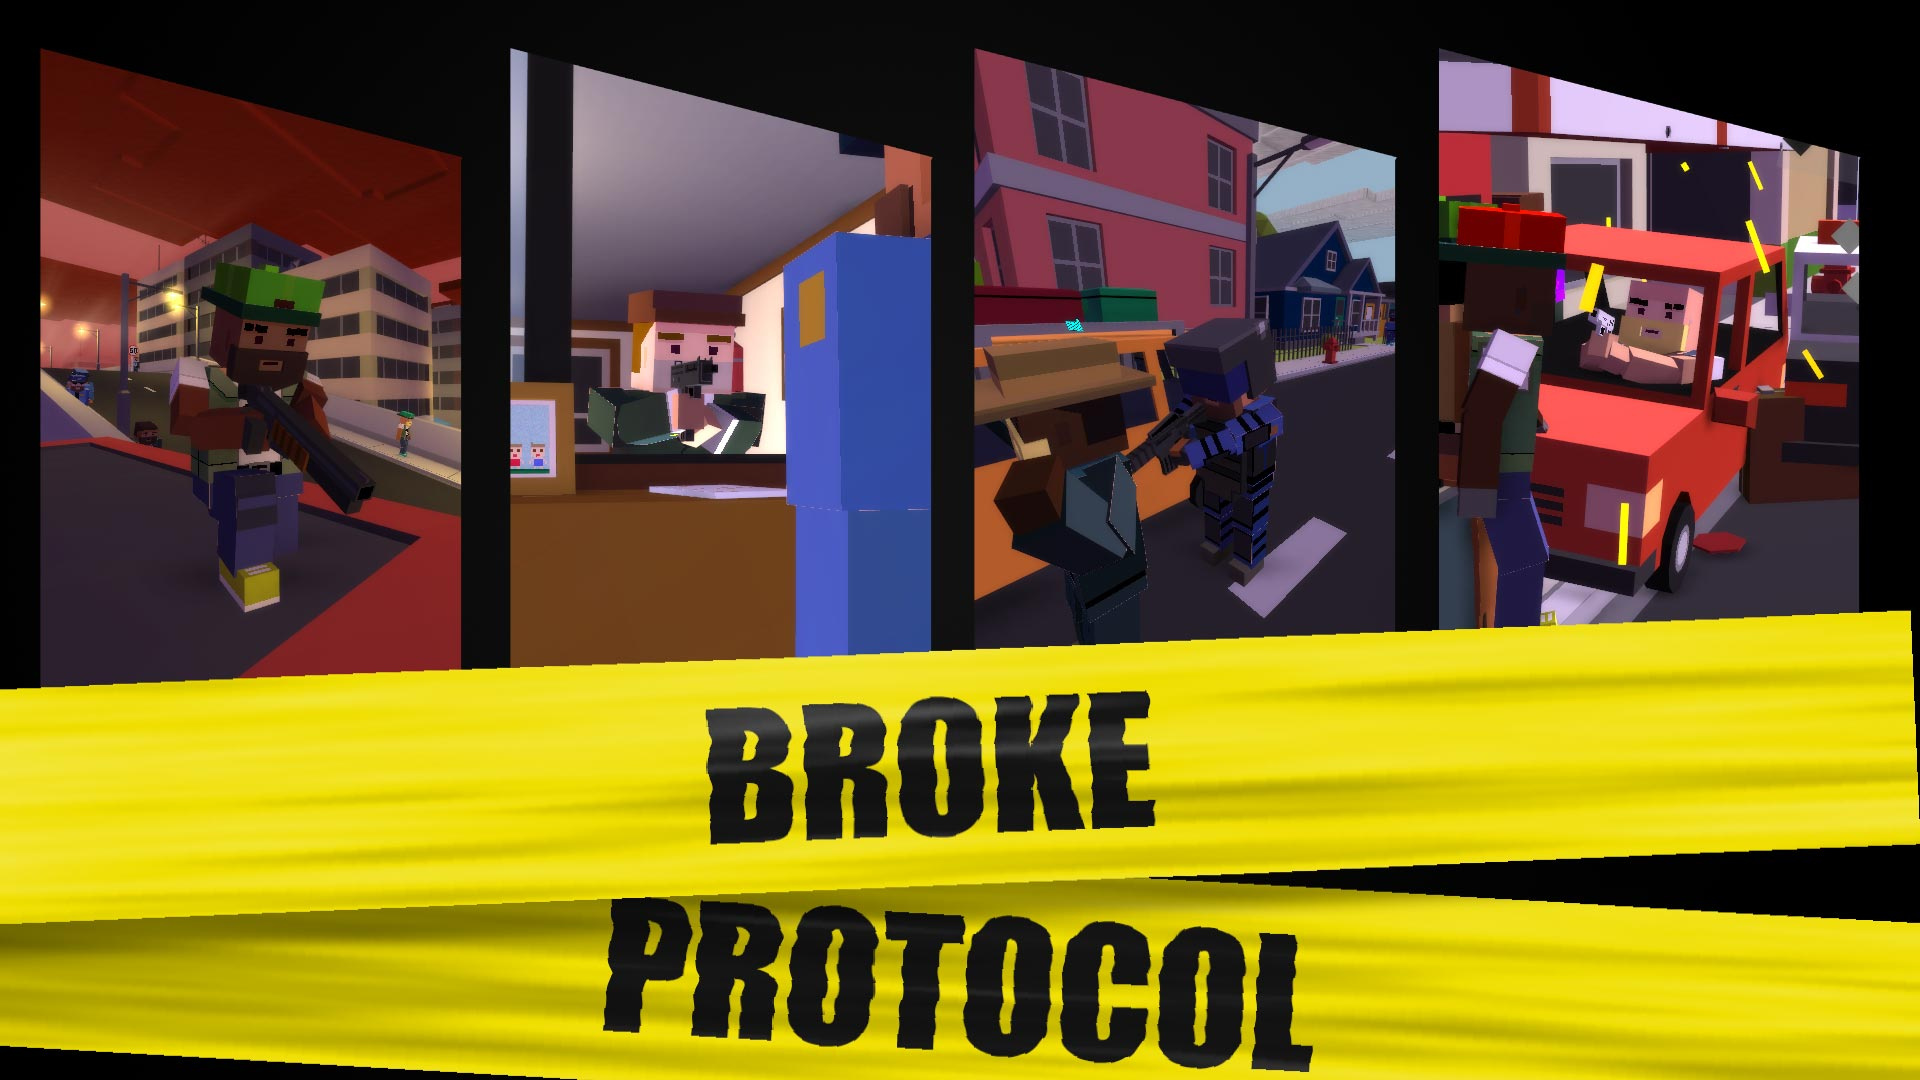 Broke Protocol Wallpaper